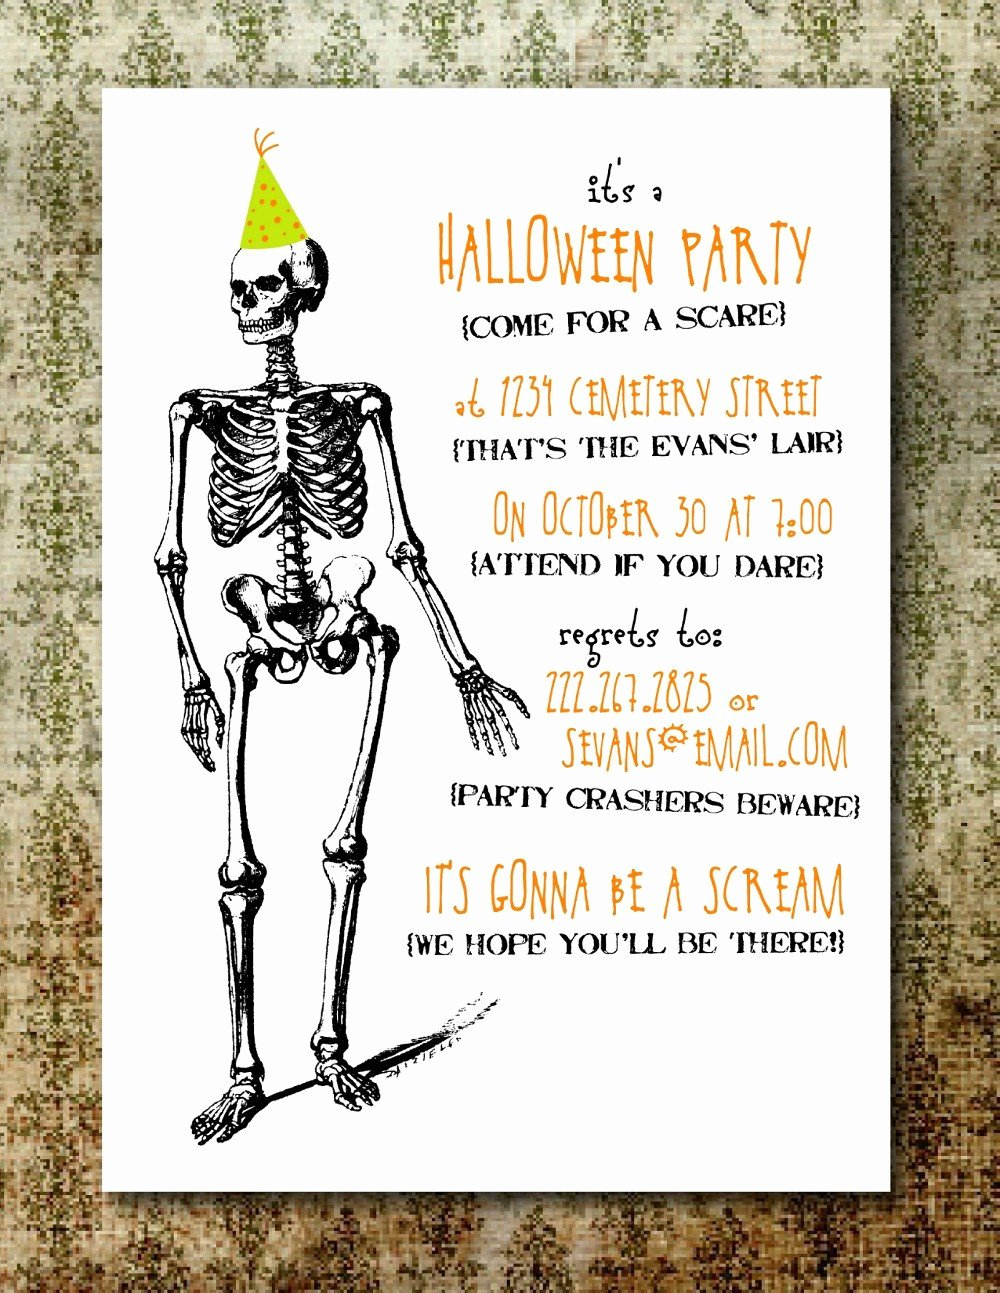 Halloween Party Invite Template Beautiful Printable Spooky Halloween Party Invitation